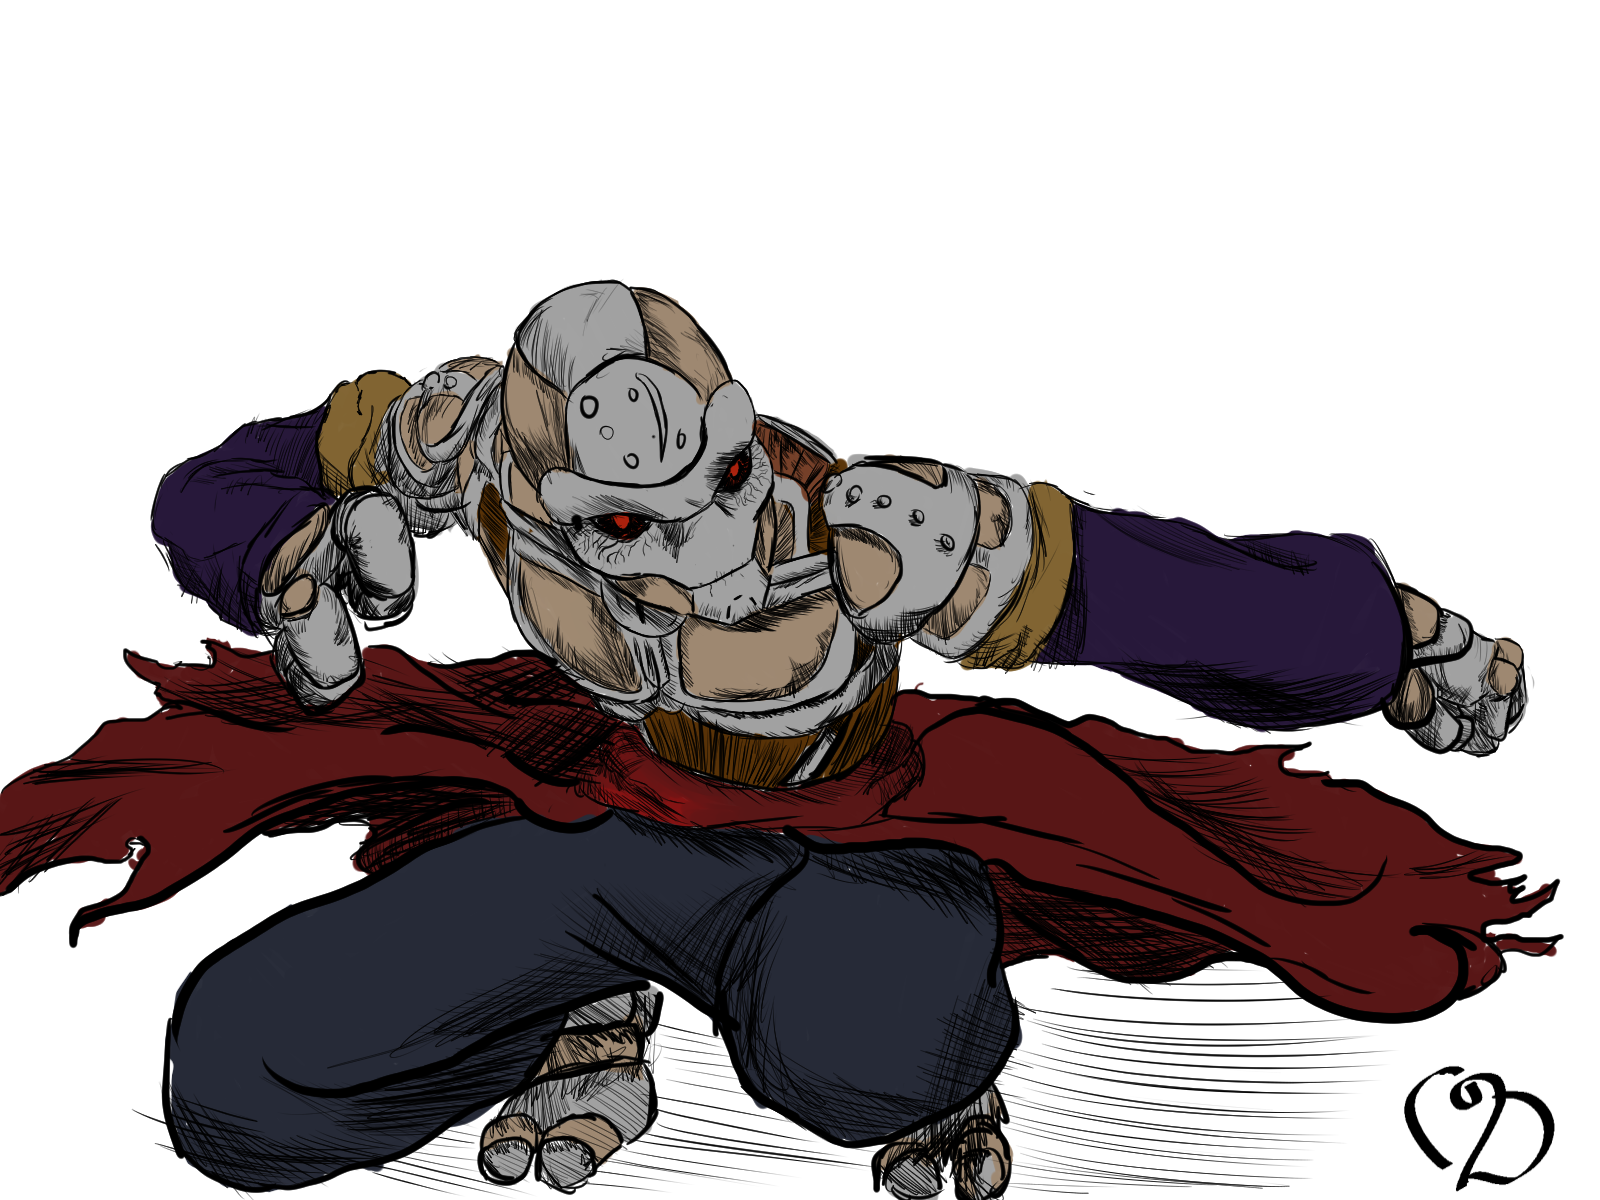 Necromancer drawing warforged. Tranquility a monk dnd